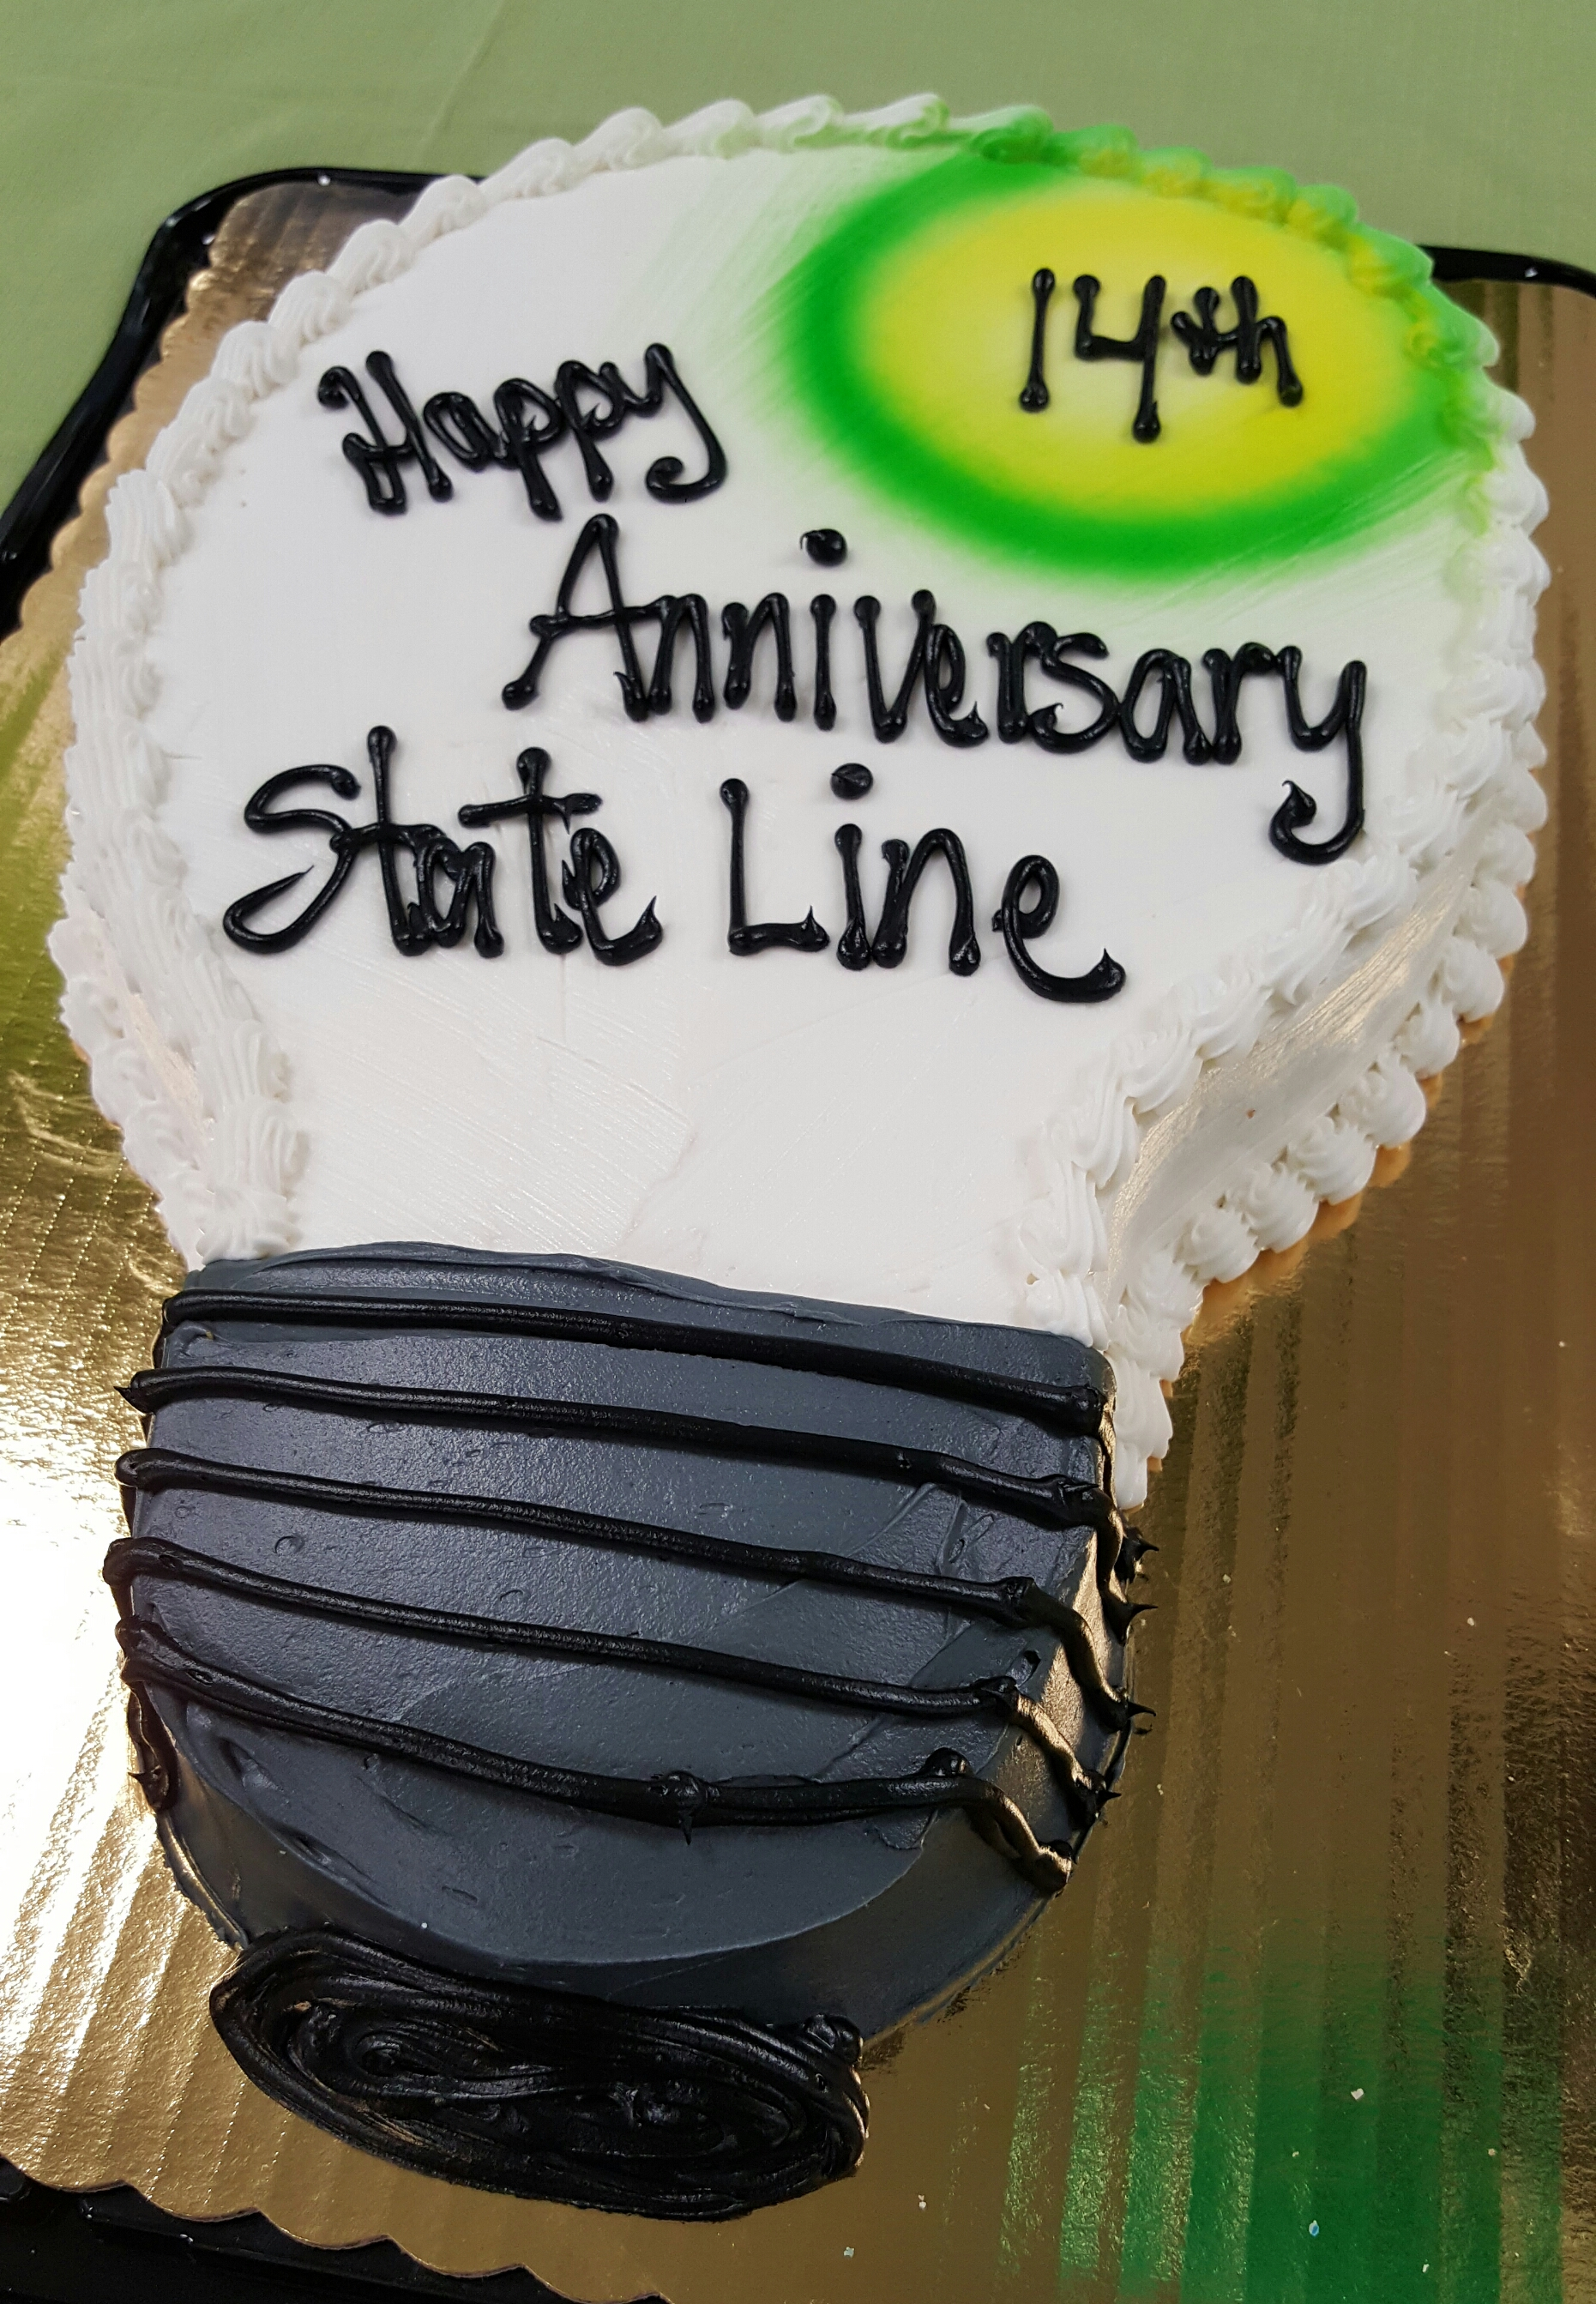 We're Celebrating 14 YEARS!